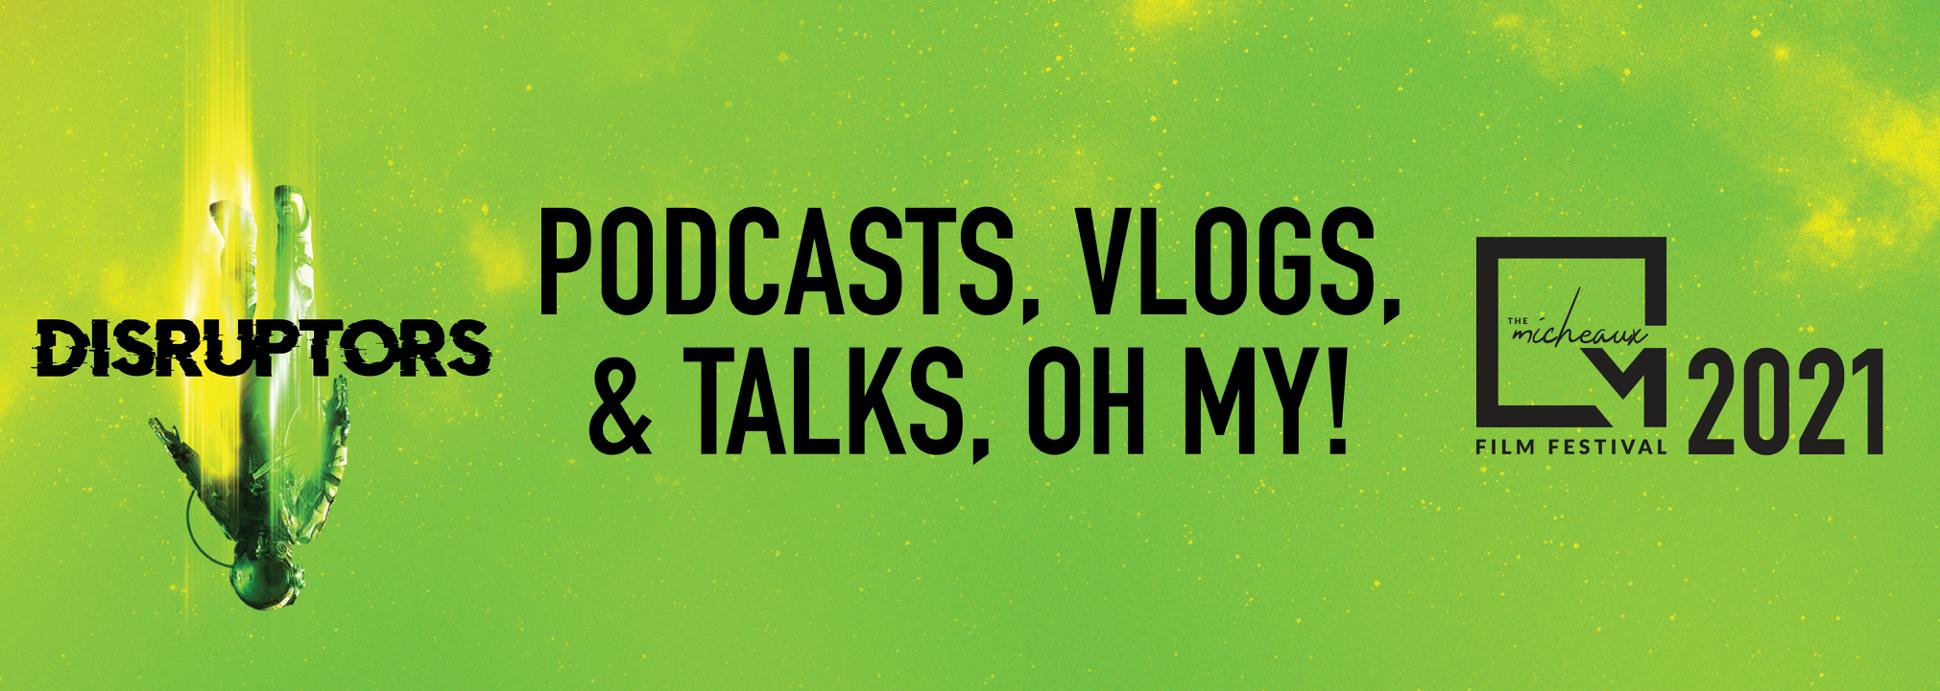 Podcasts, Vlogs, & Talks, Oh My!